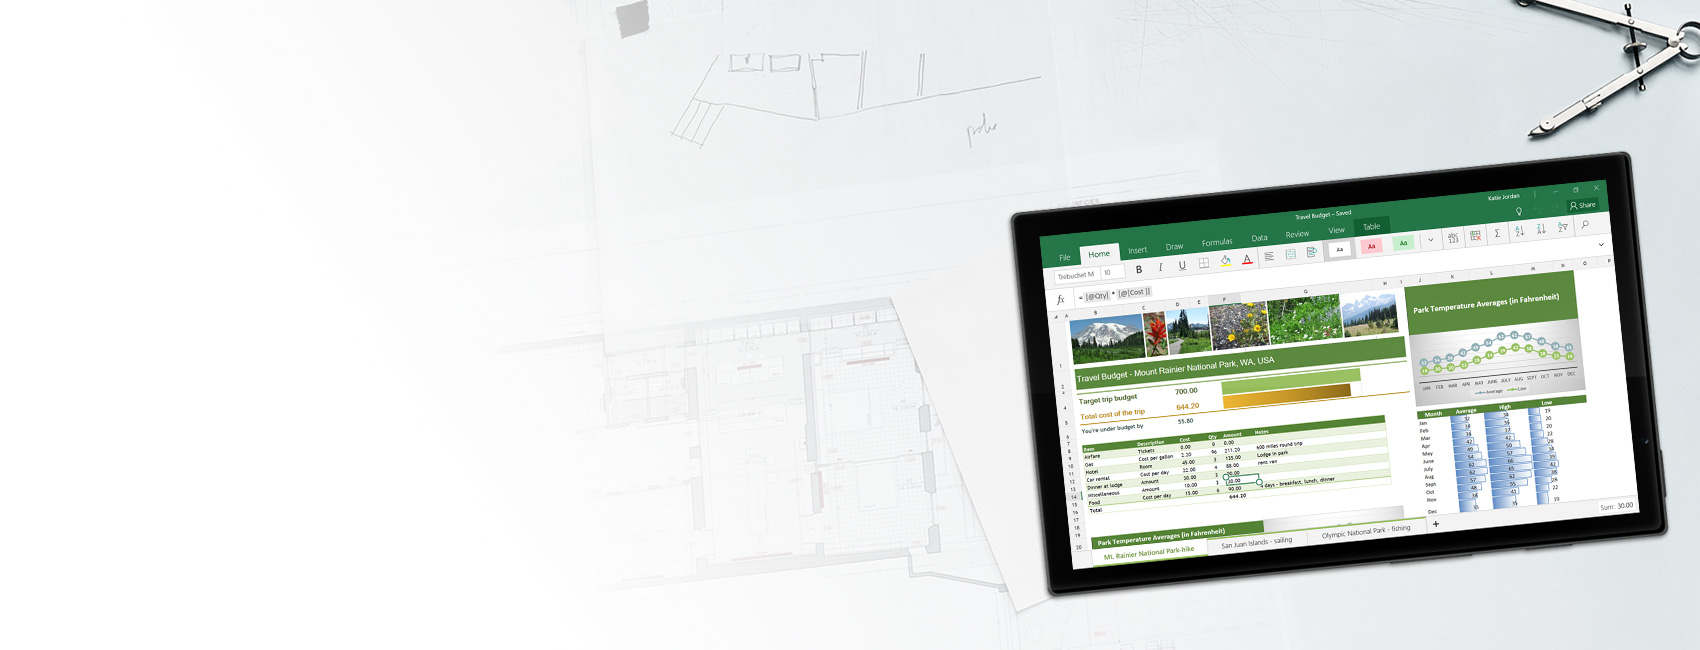 Windows tablet displaying an Excel spreadsheet containing a sample chart and travel budget report in Excel for Windows 10 Mobile